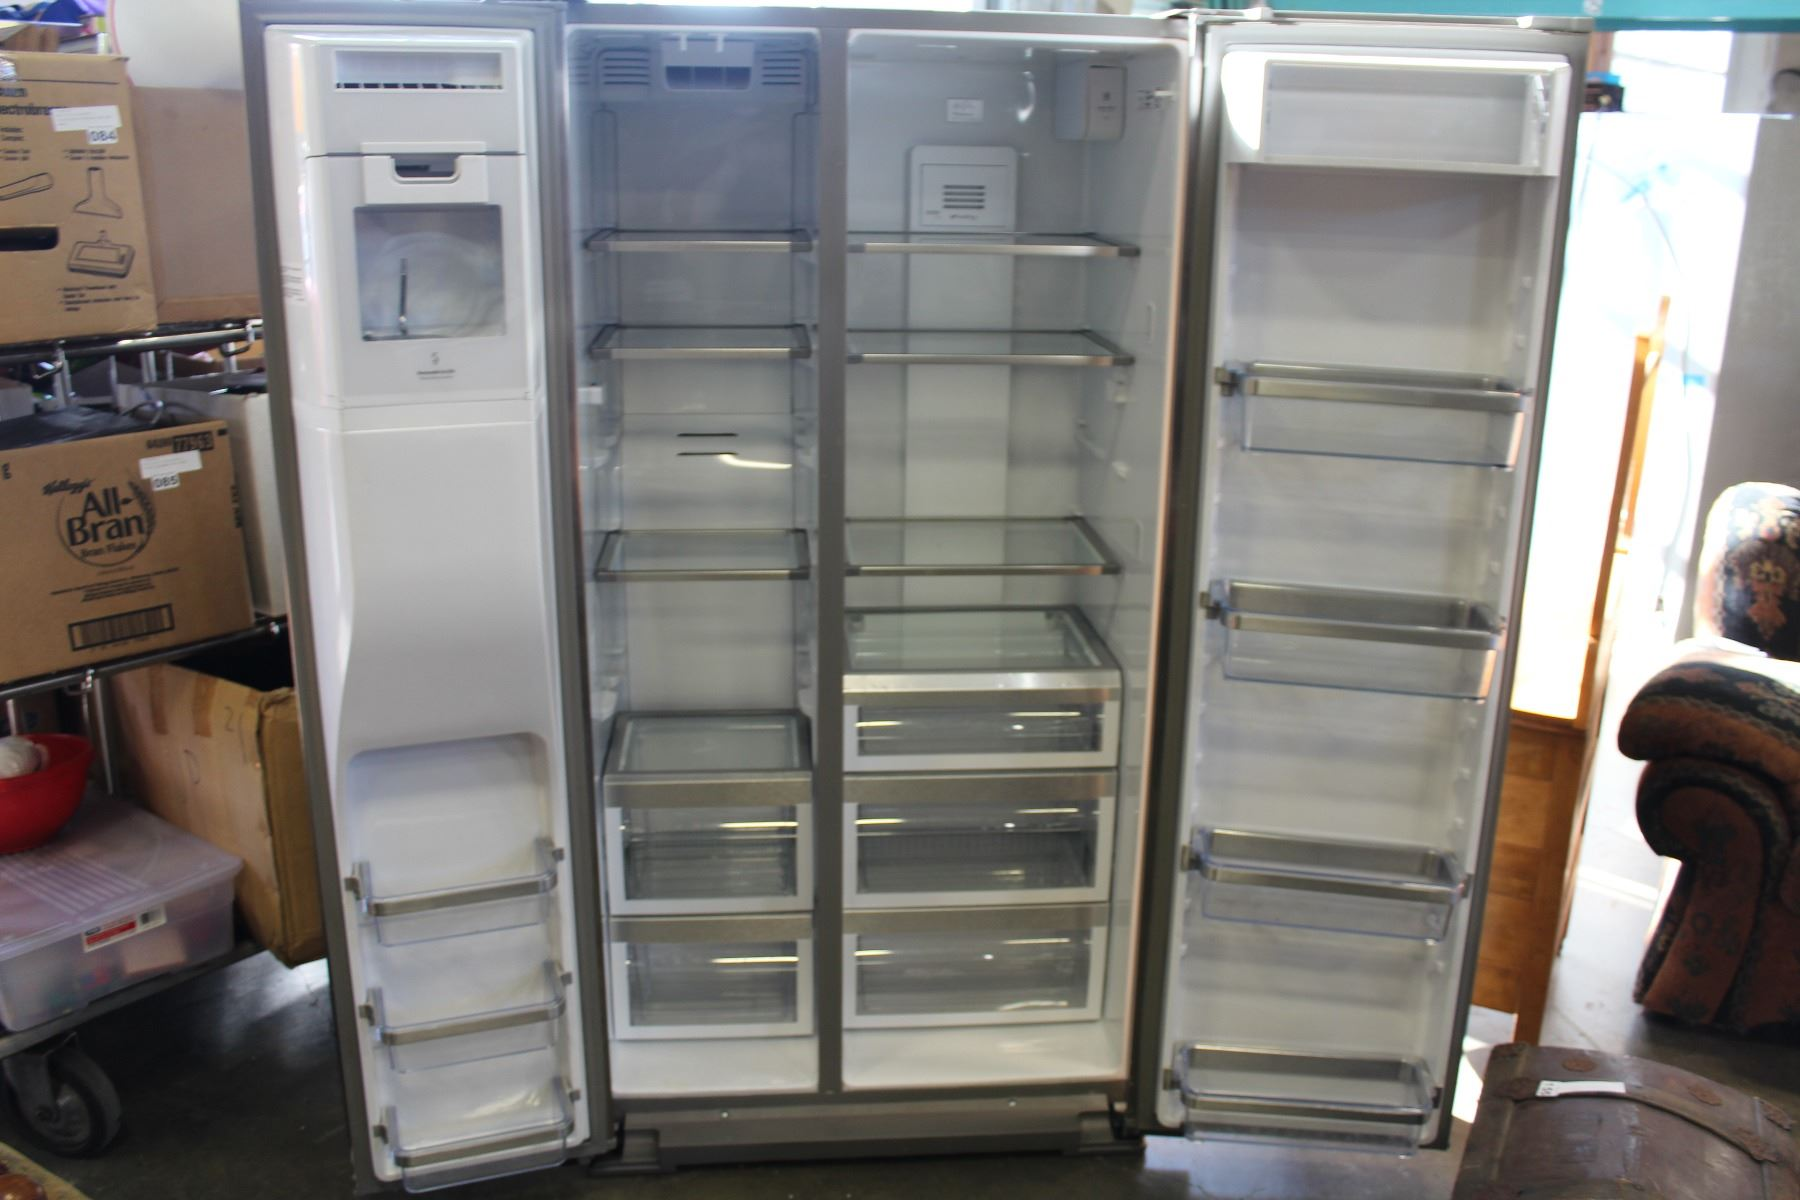 ... Image 5 : NEW KITCHEN AID STAINLESS FRENCH DOOR COUNTER DEPTH FRIDGE  WITH DIGITAL SCREEN WATER ...